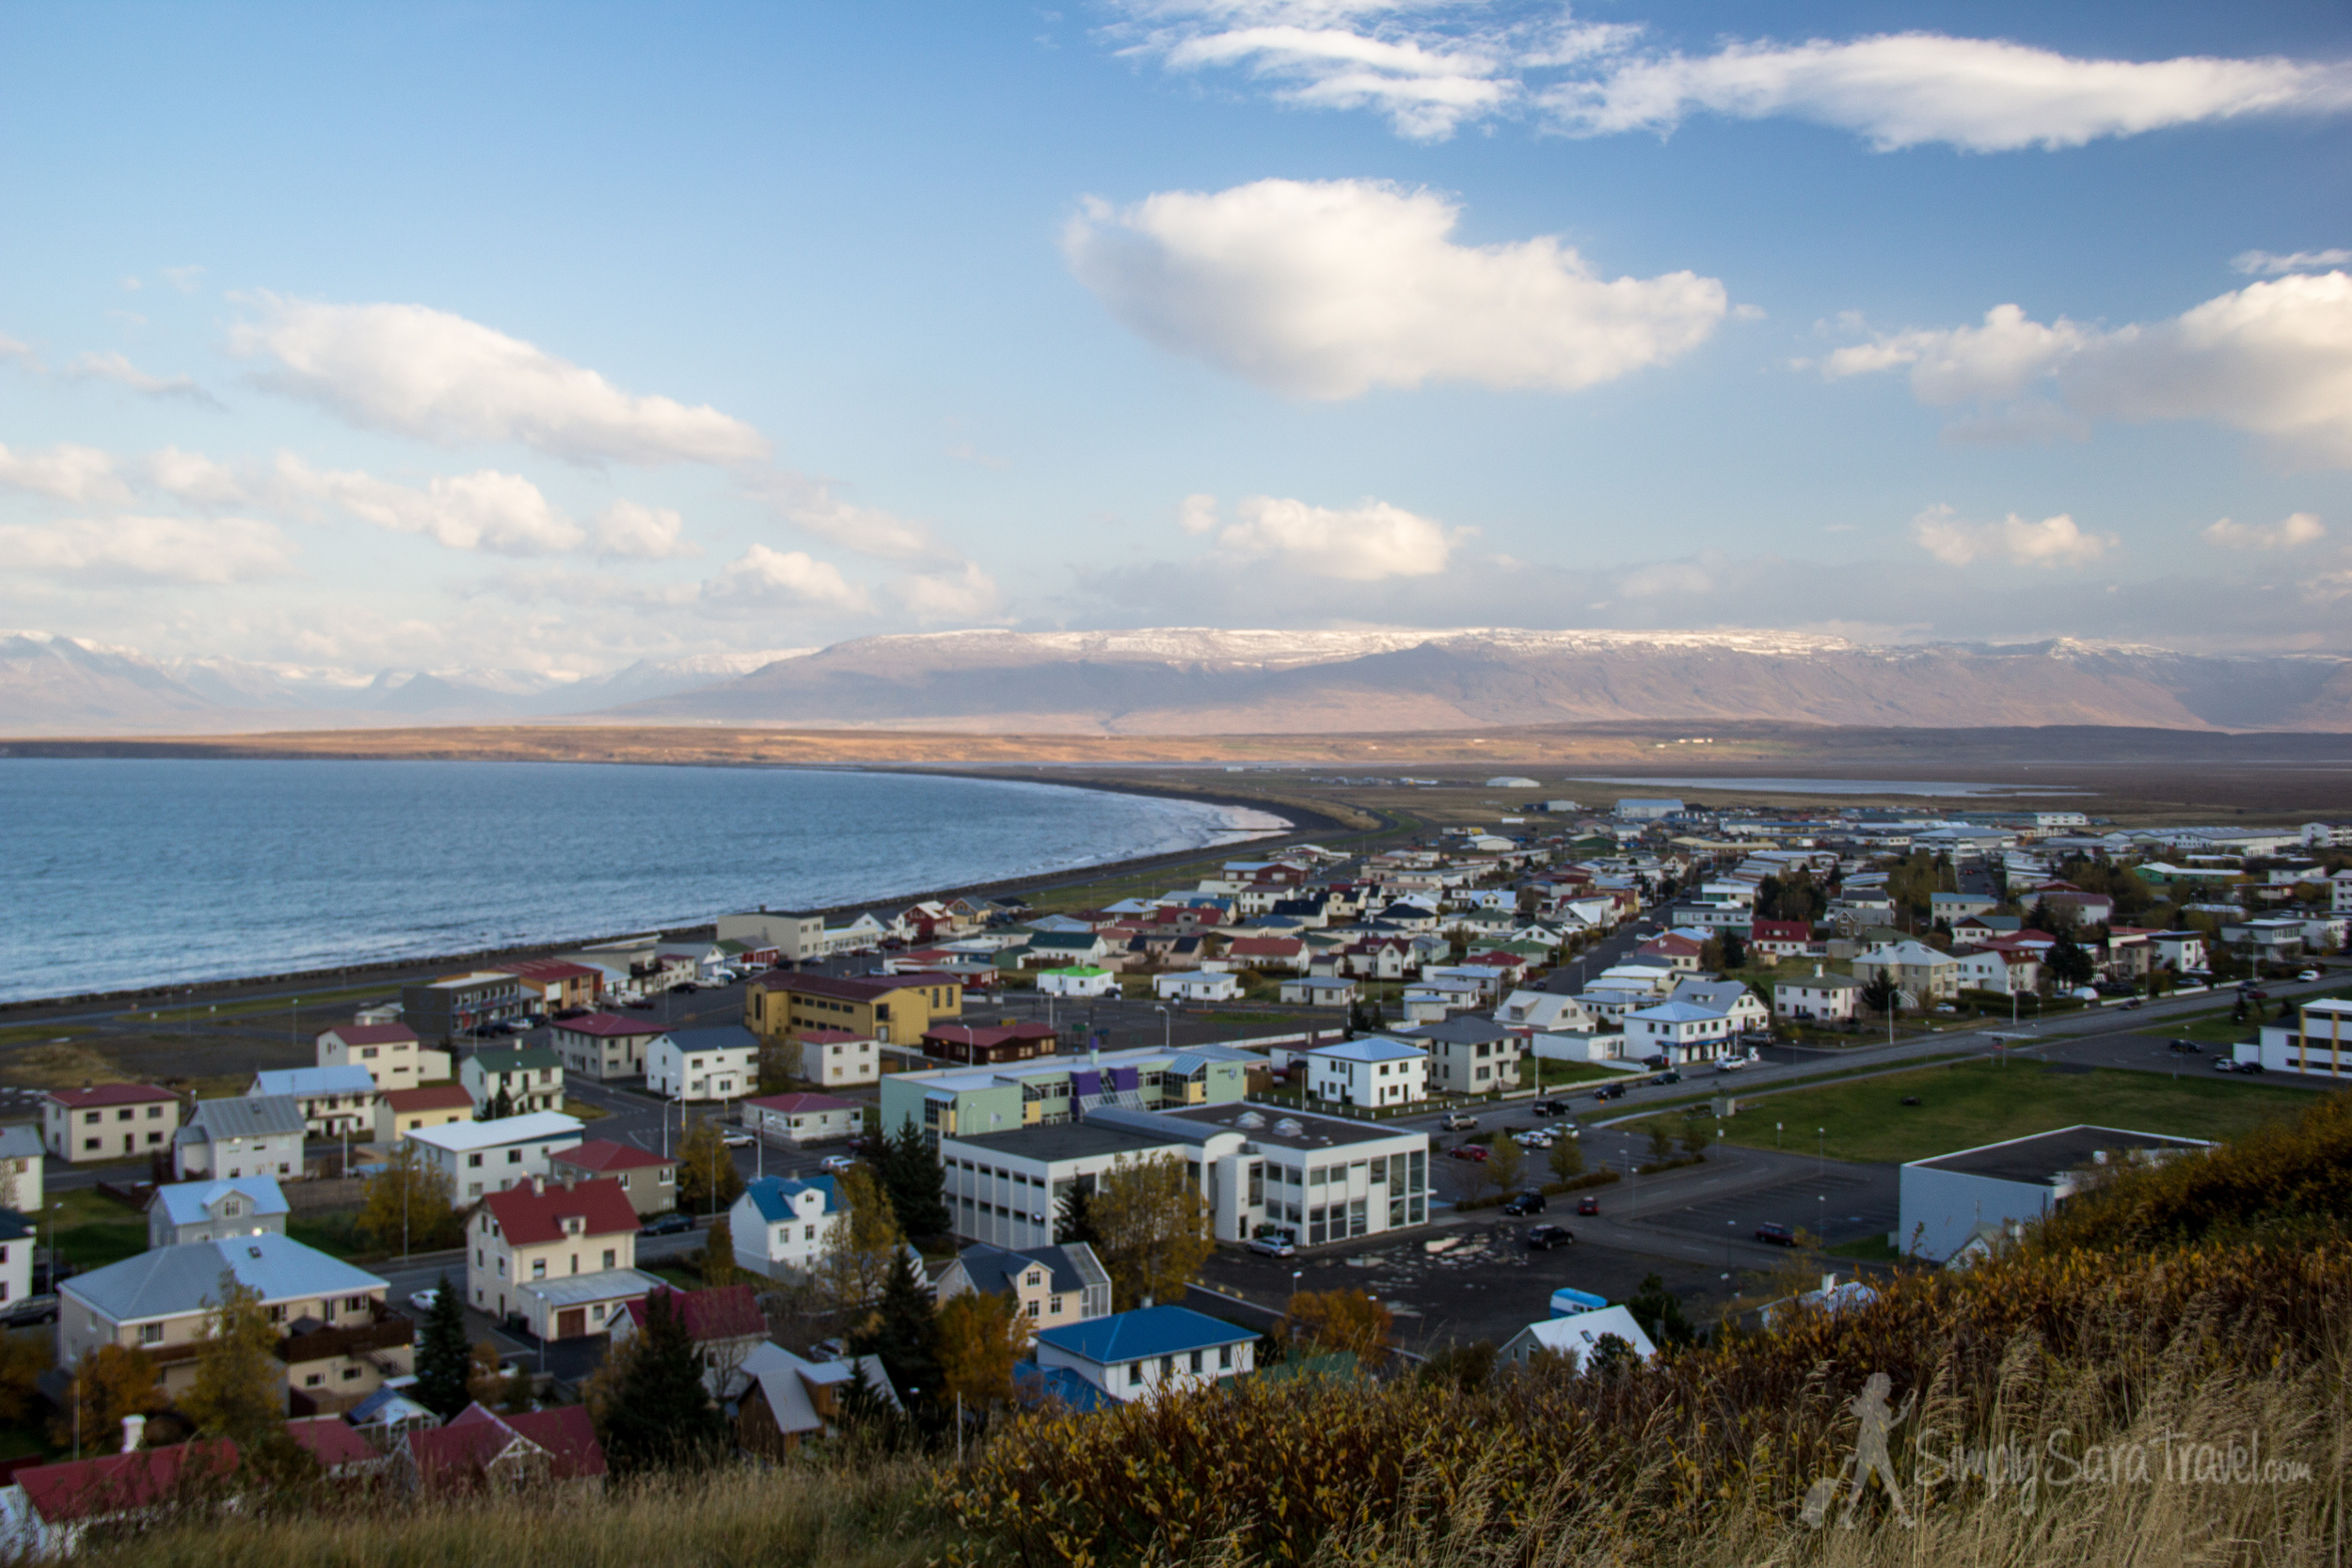 The view from the top of the hill ofSauðárkrókur